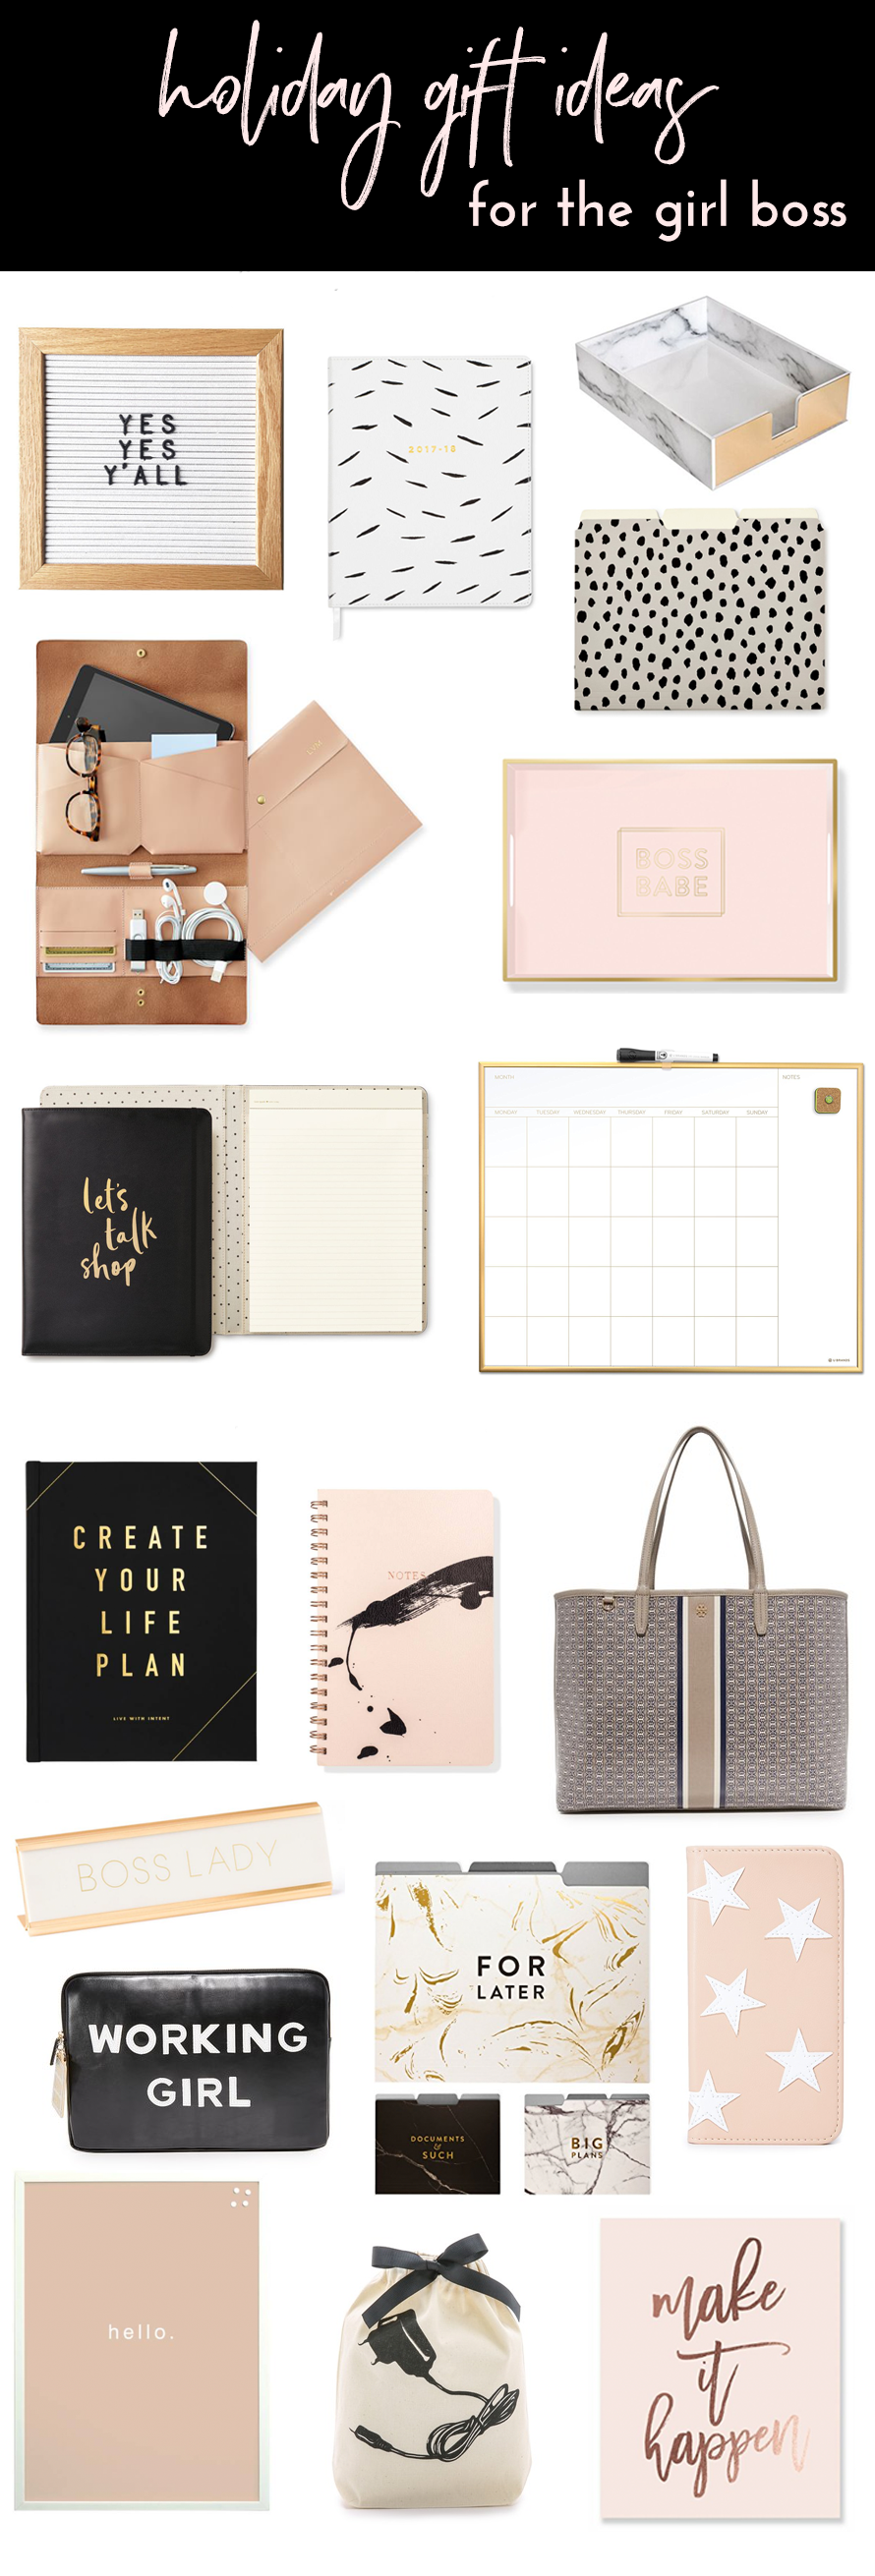 Gift Ideas For Her Boss Christmas Holiday Gifts Y Blush And Gold Office White